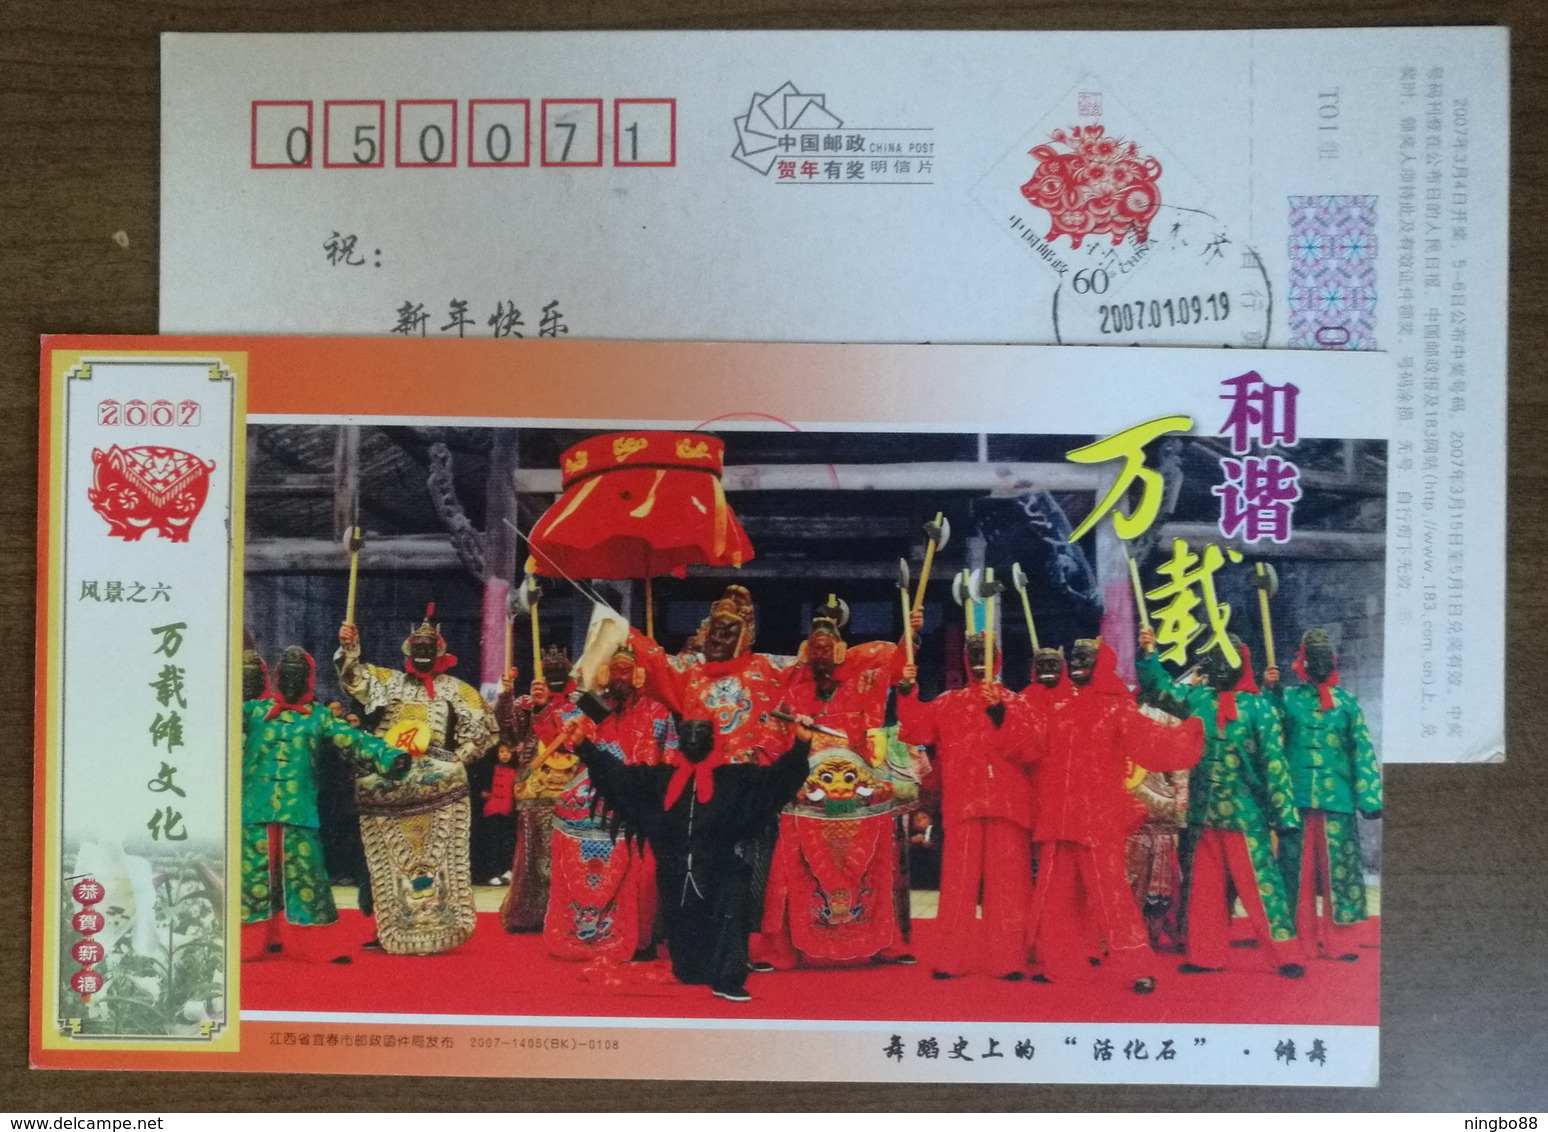 Wooden Mask Nuo Dancing,living Fossil Of Dance History,China 2007 Harmonious Wanzai New Year Greeting Pre-stamped Card - Dance